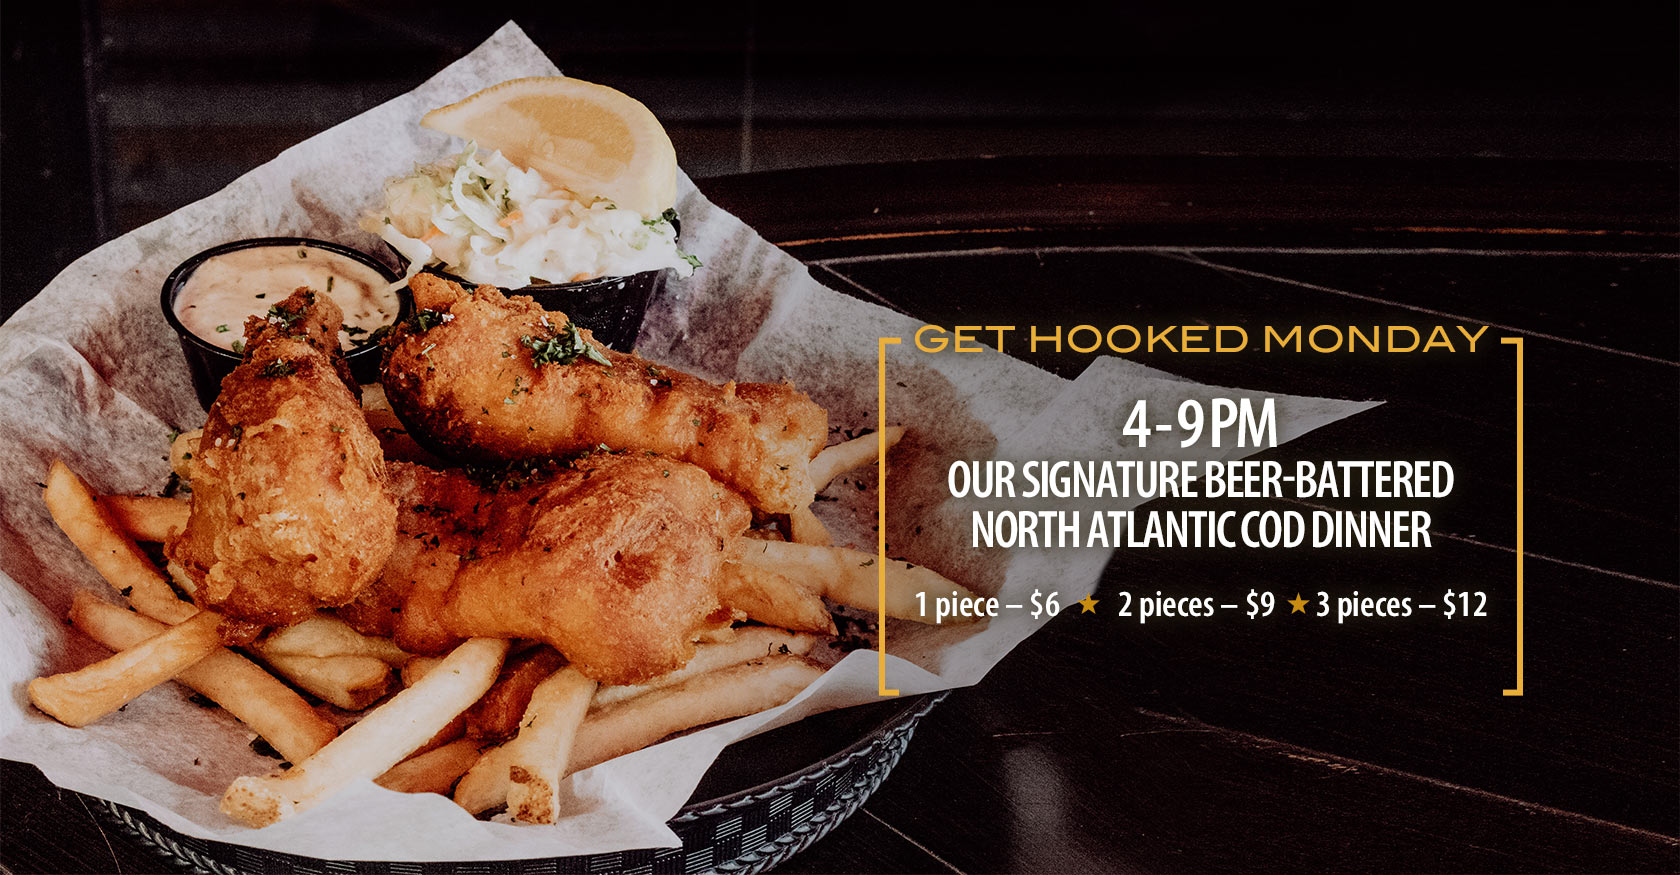 Get hooked Monday. 4-9pm. Our signature beer-battered north Atlantic cod dinner. 1 pice: $6, 2 pieces: $9, 3 pieces: $12